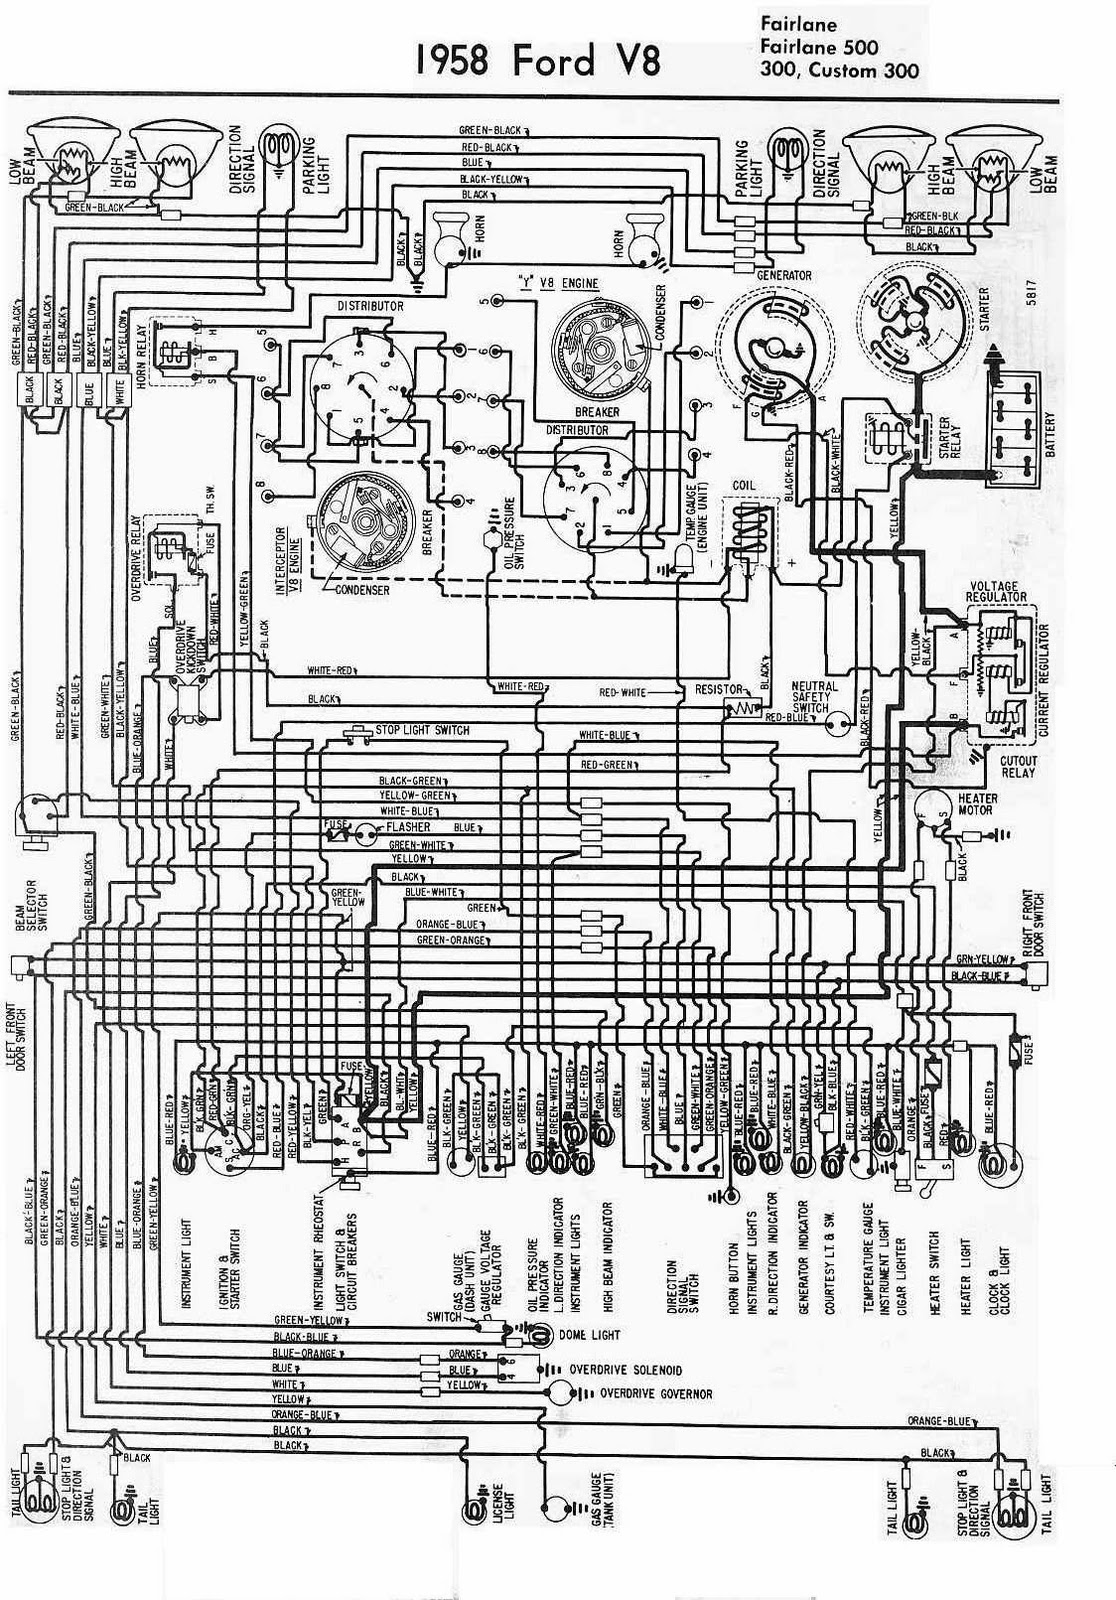 hight resolution of ford v8 wiring diagram wiring diagram for you ford v 8 ignition wiring